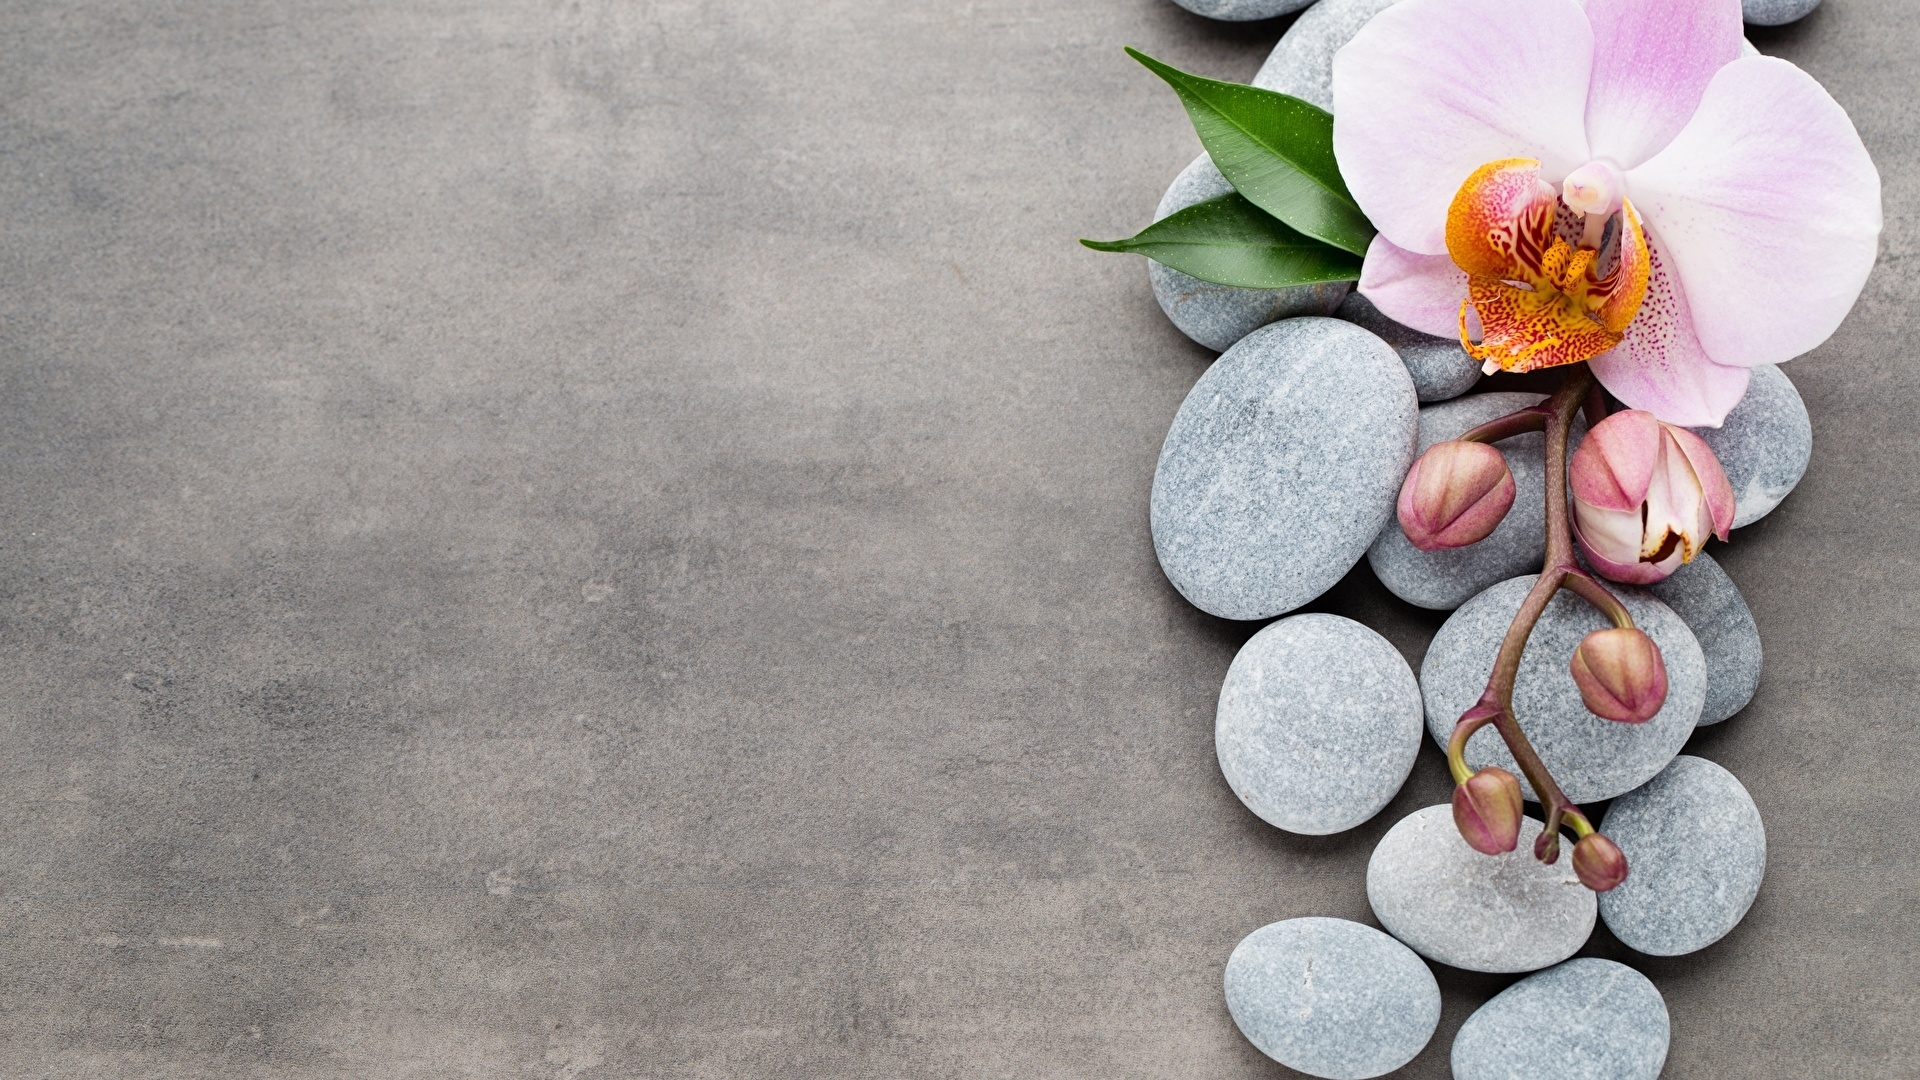 Flower And Stones Pic